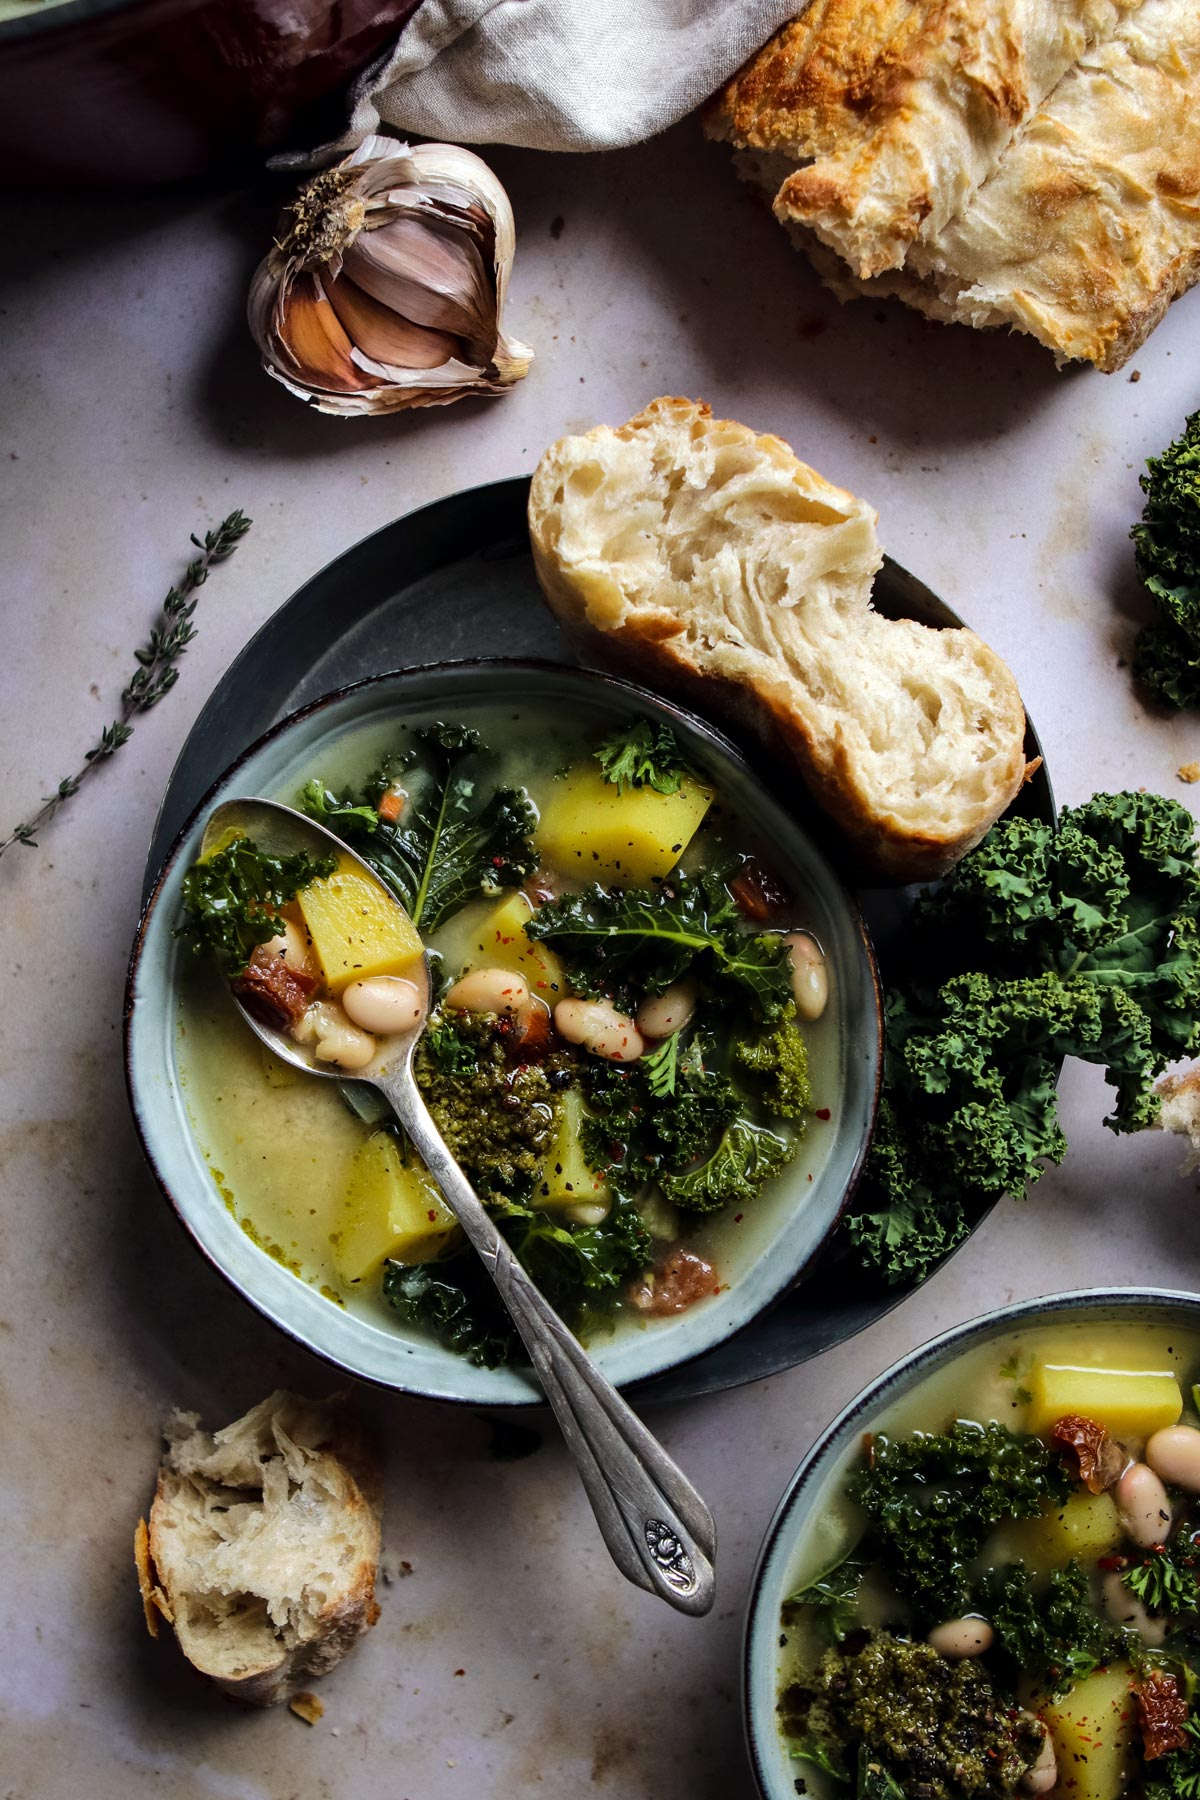 Vegan potato and kale soup in a bowl with a spoon.